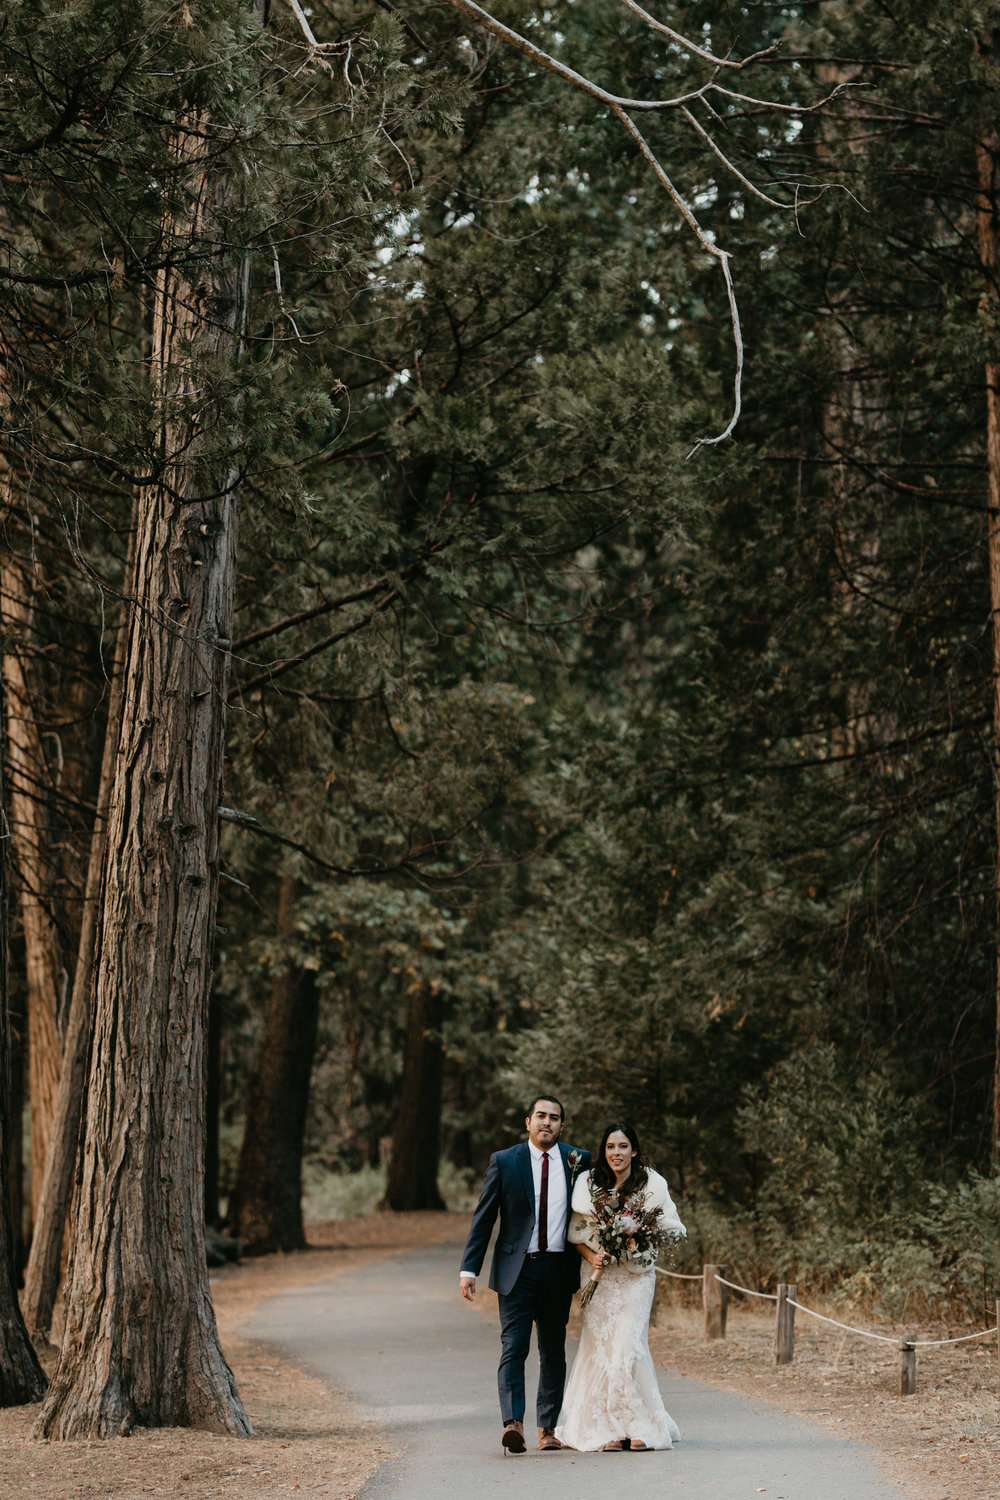 nicole-daacke-photography-intimate-elopement-wedding-yosemite-national-park-california-taft-point-sunset-photos-yosemite-valley-tunnel-view-first-look-sunrise-golden-granite-hiking-adventure-wedding-adventurous-elopement-photographer-21.jpg